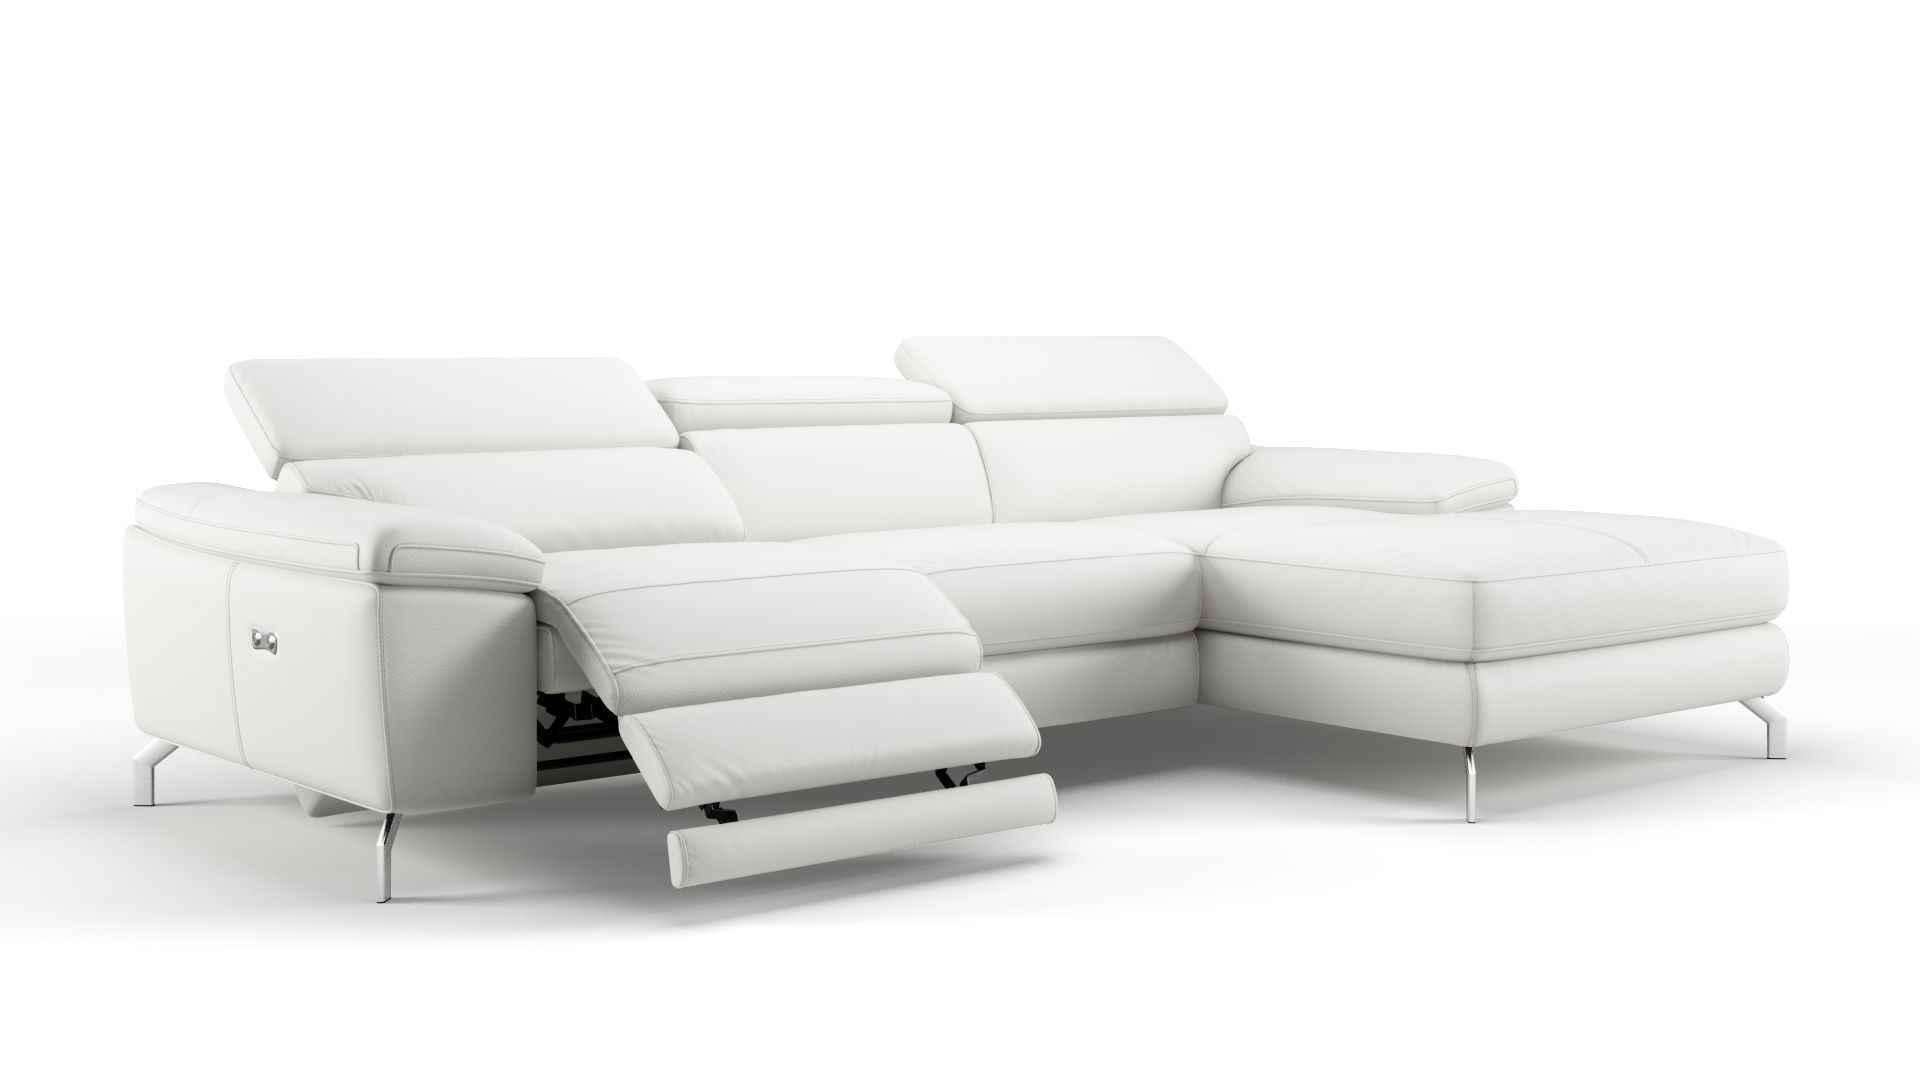 Sofa Mit Relaxfunktion Ledersofa Salento Ecksofa Mit Relaxfunktion Sofanella Stan